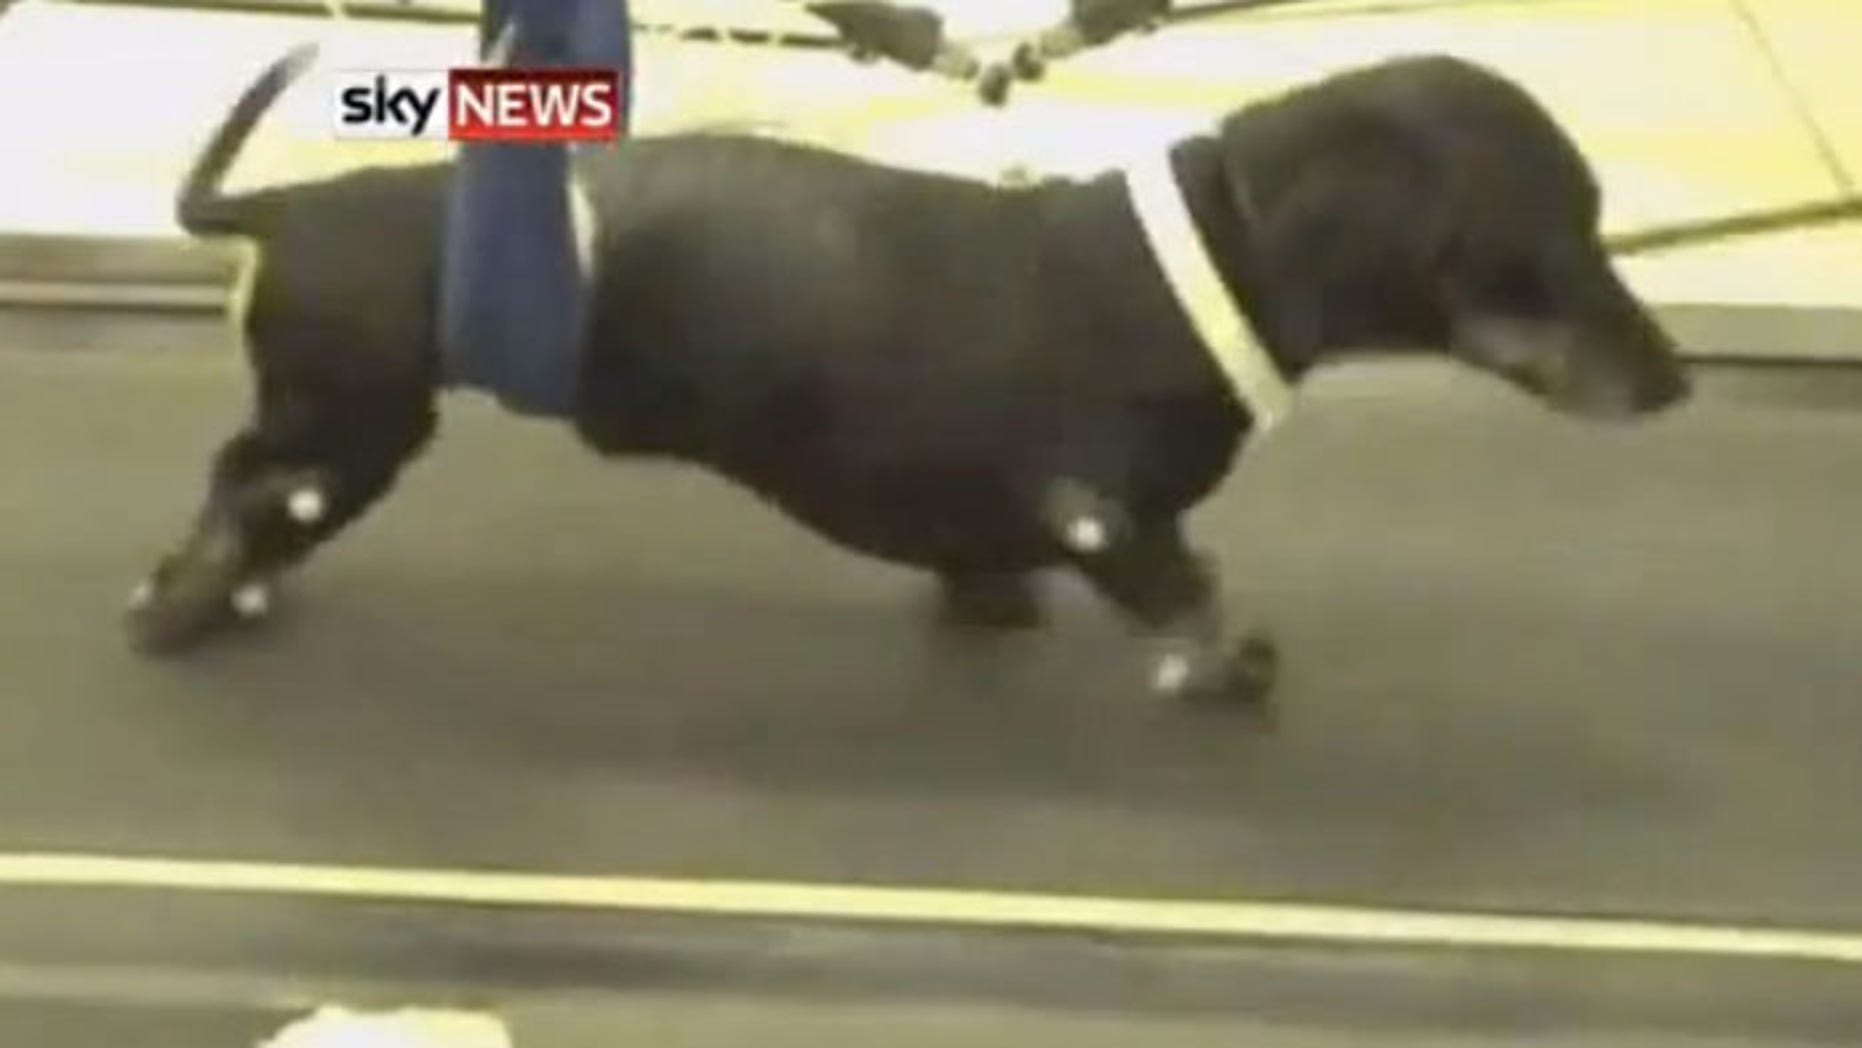 Paralyzed dogs walk again after new treatment | Fox News